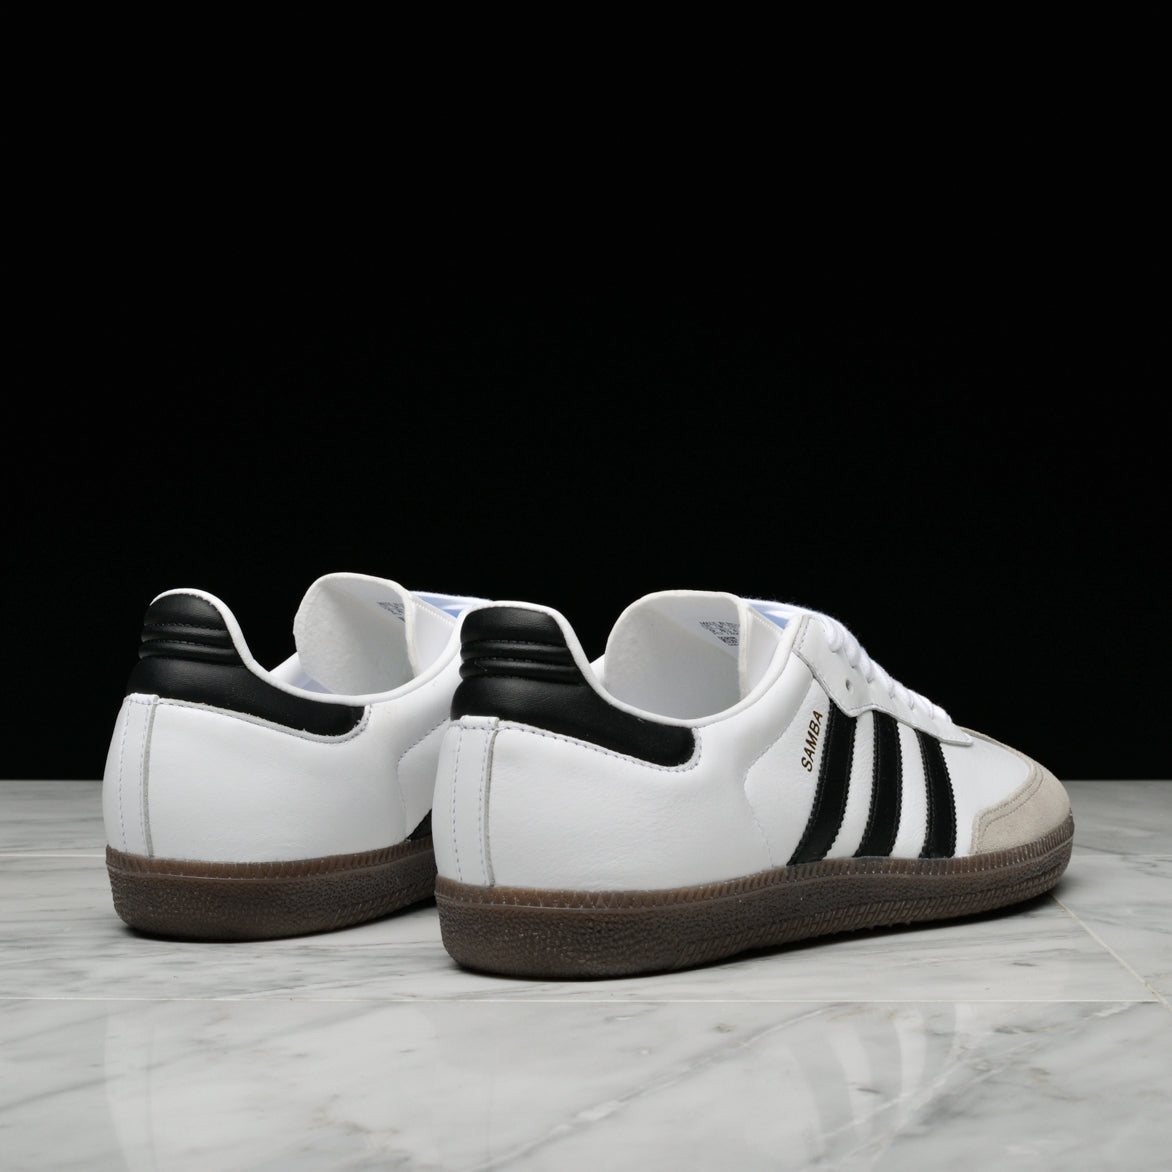 SAMBA OG - WHITE / BLACK / GRANITE